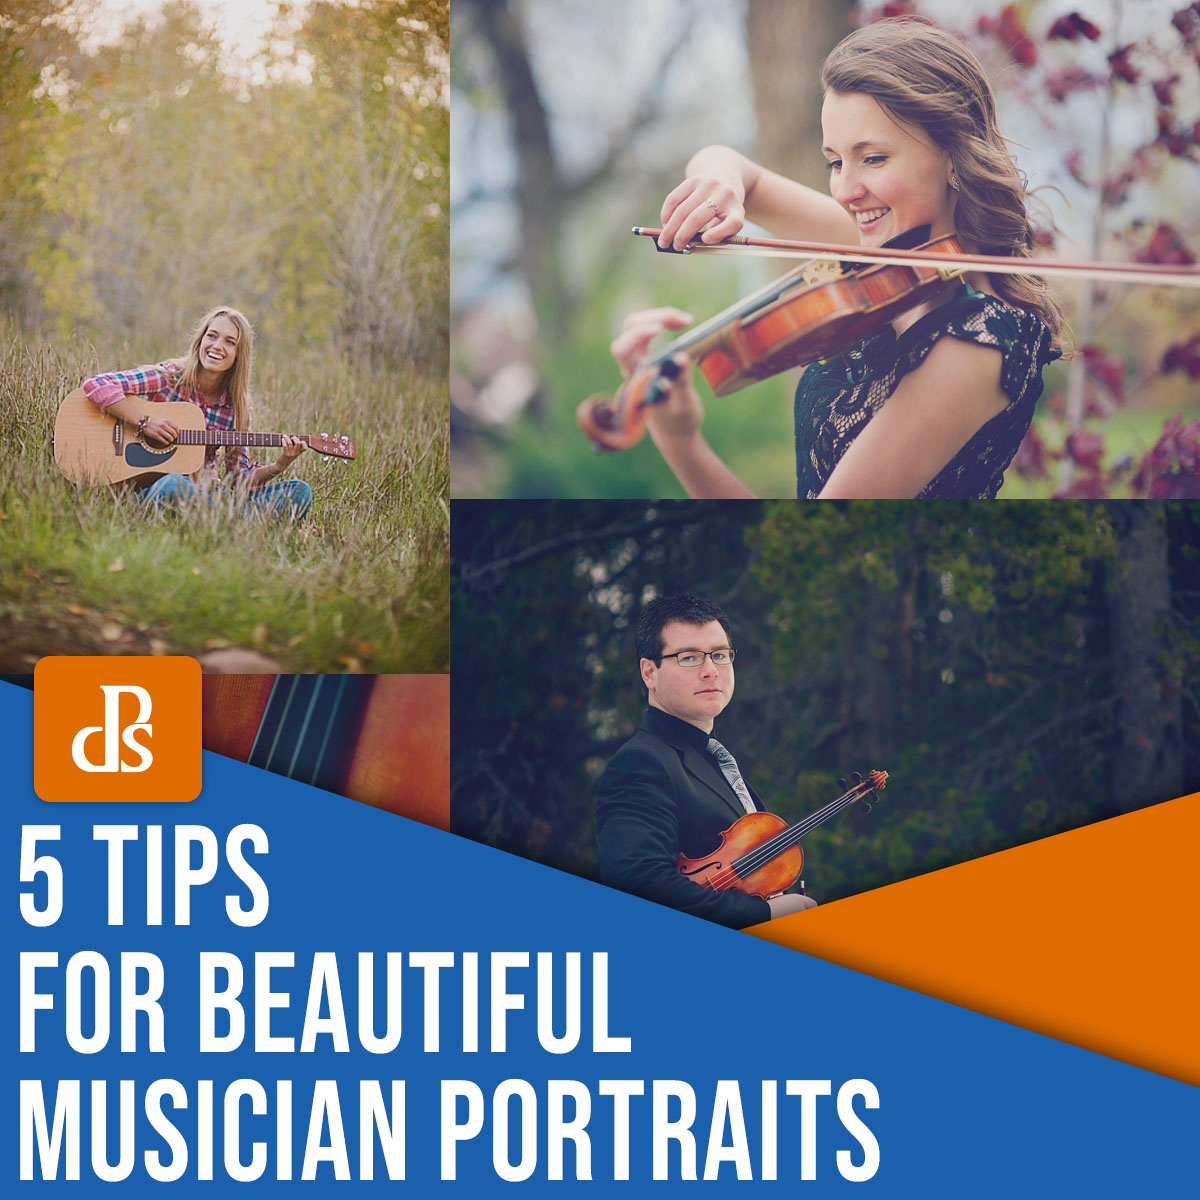 5 tips for beautiful musician portraits